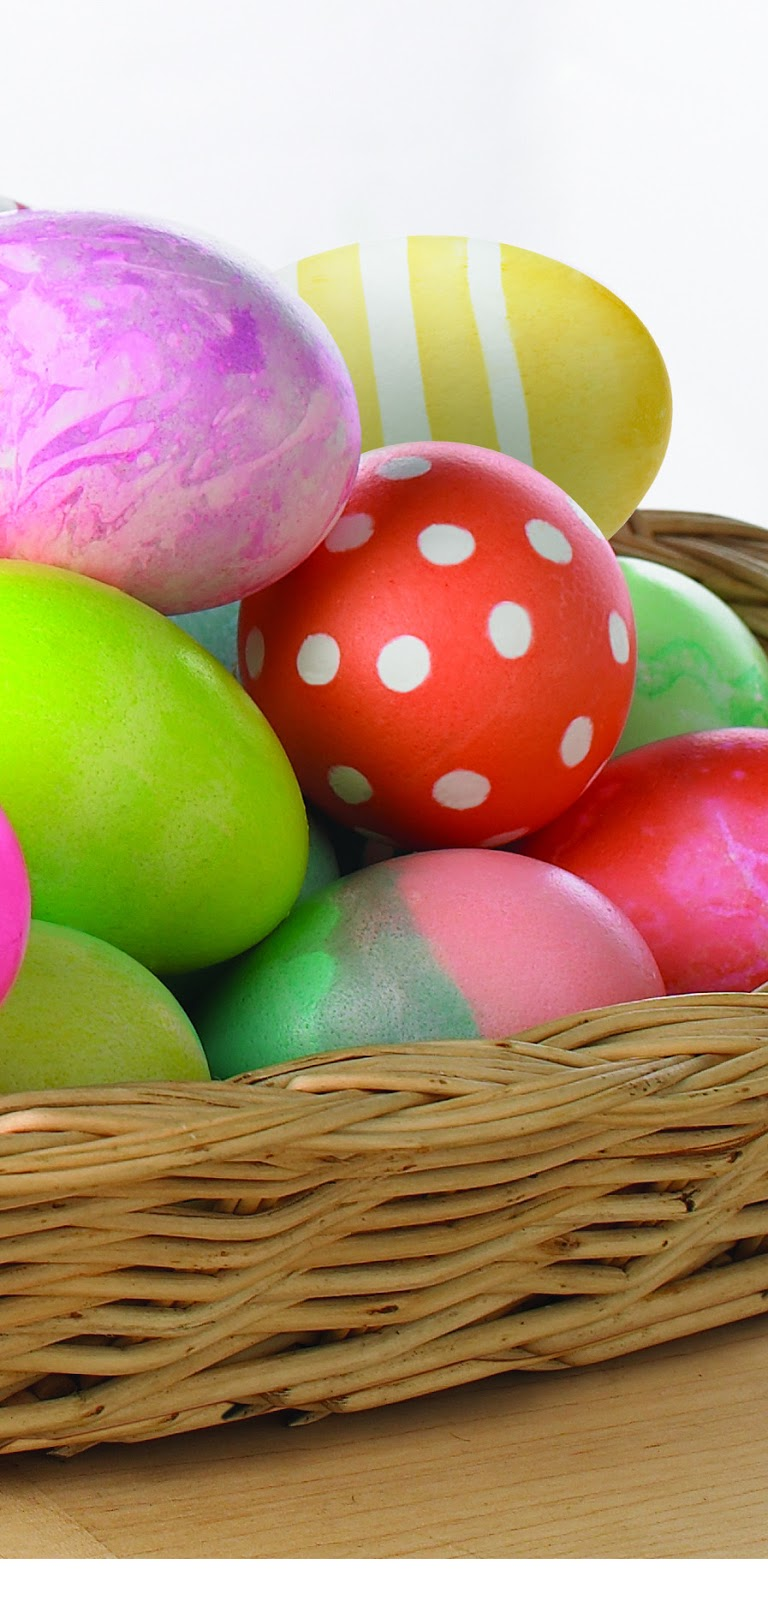 The Best Easter Iphone Wallpaper  Pics